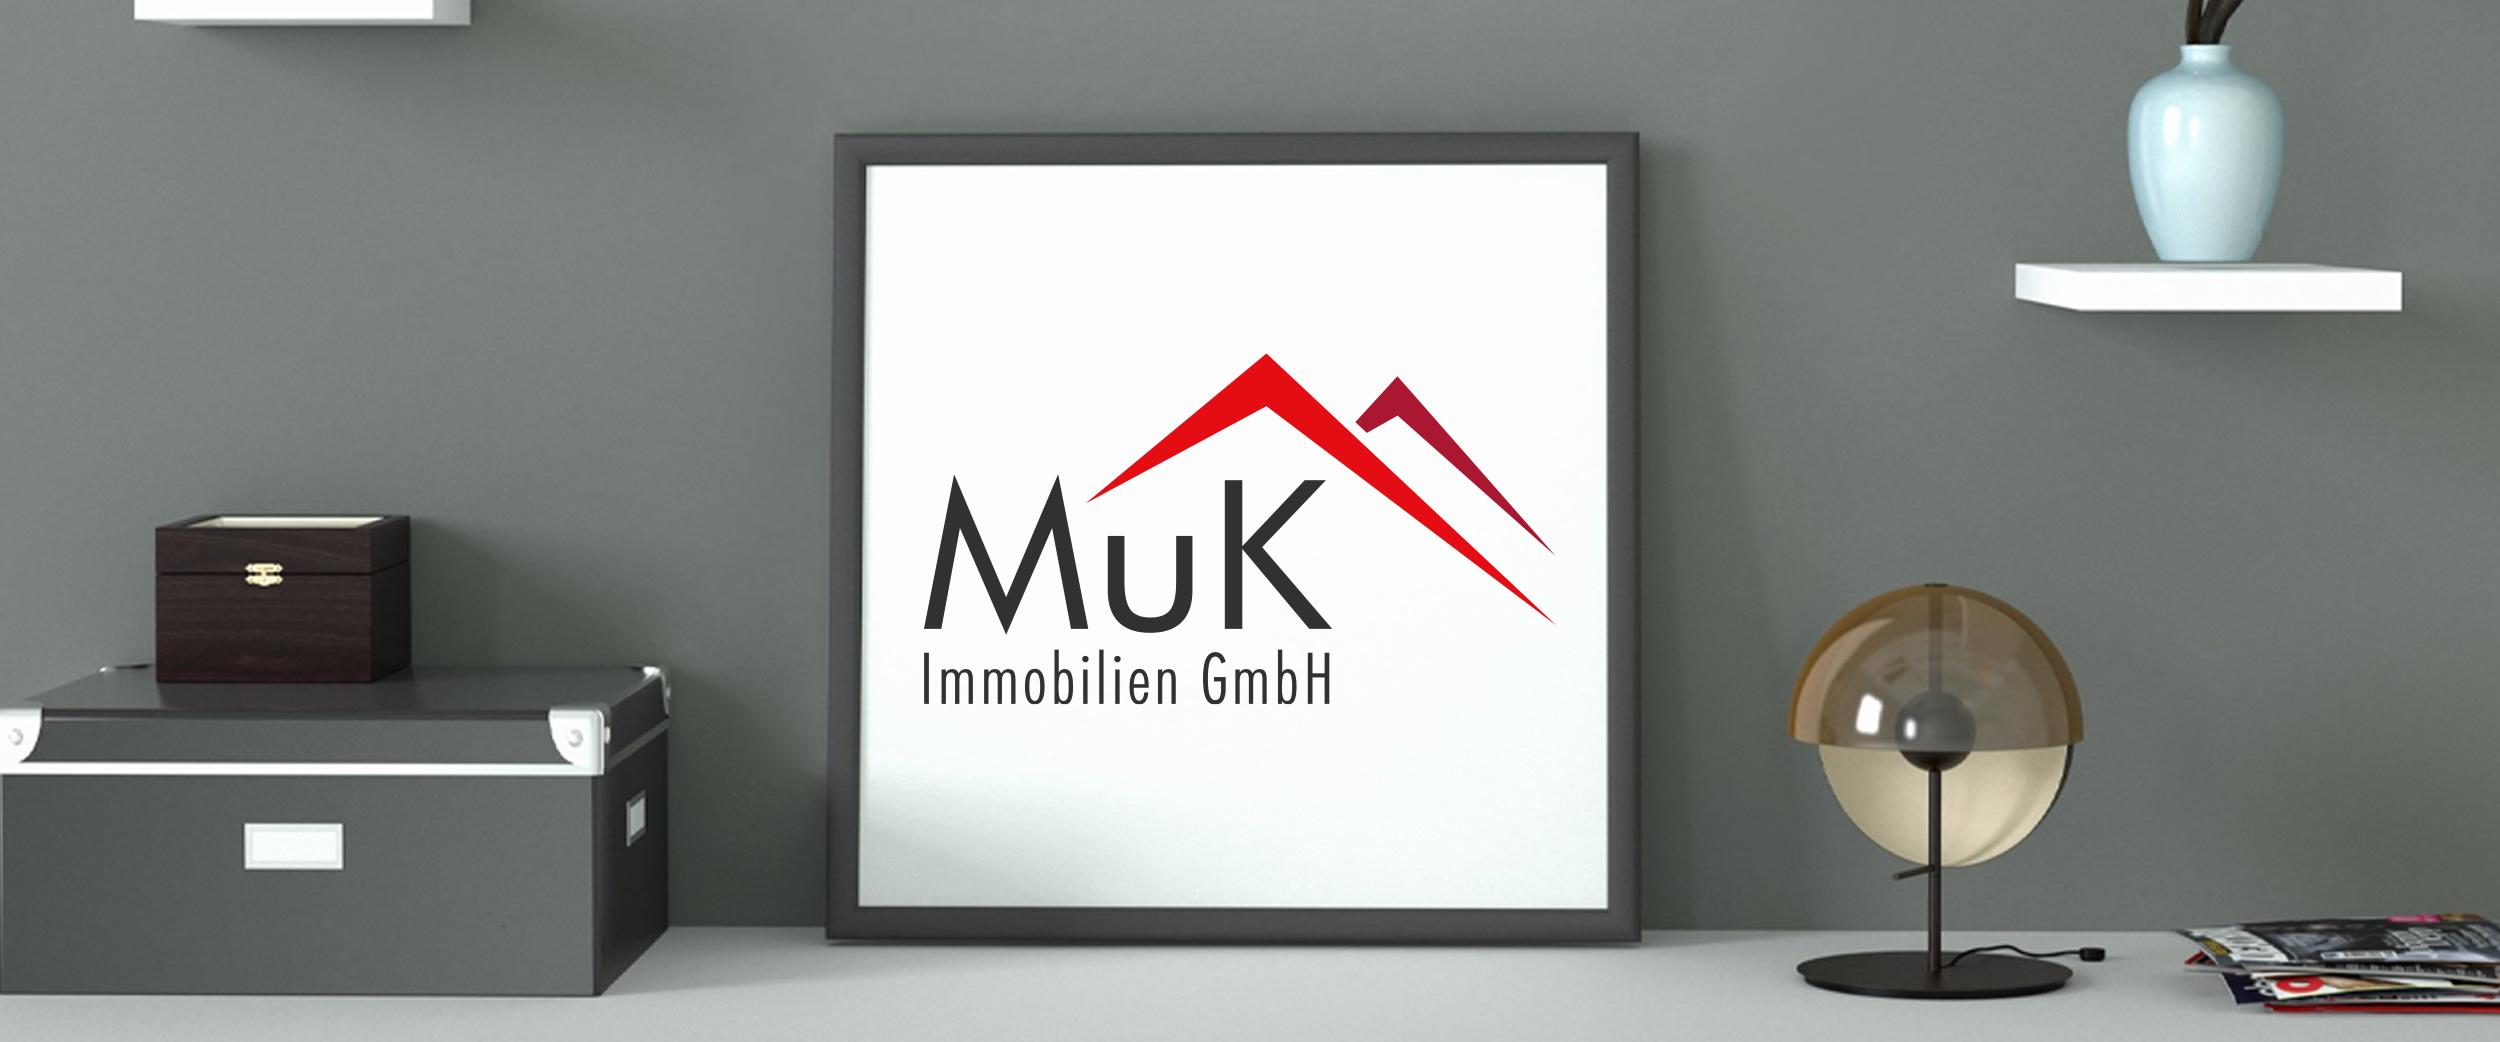 MuK Immobilien GmbH